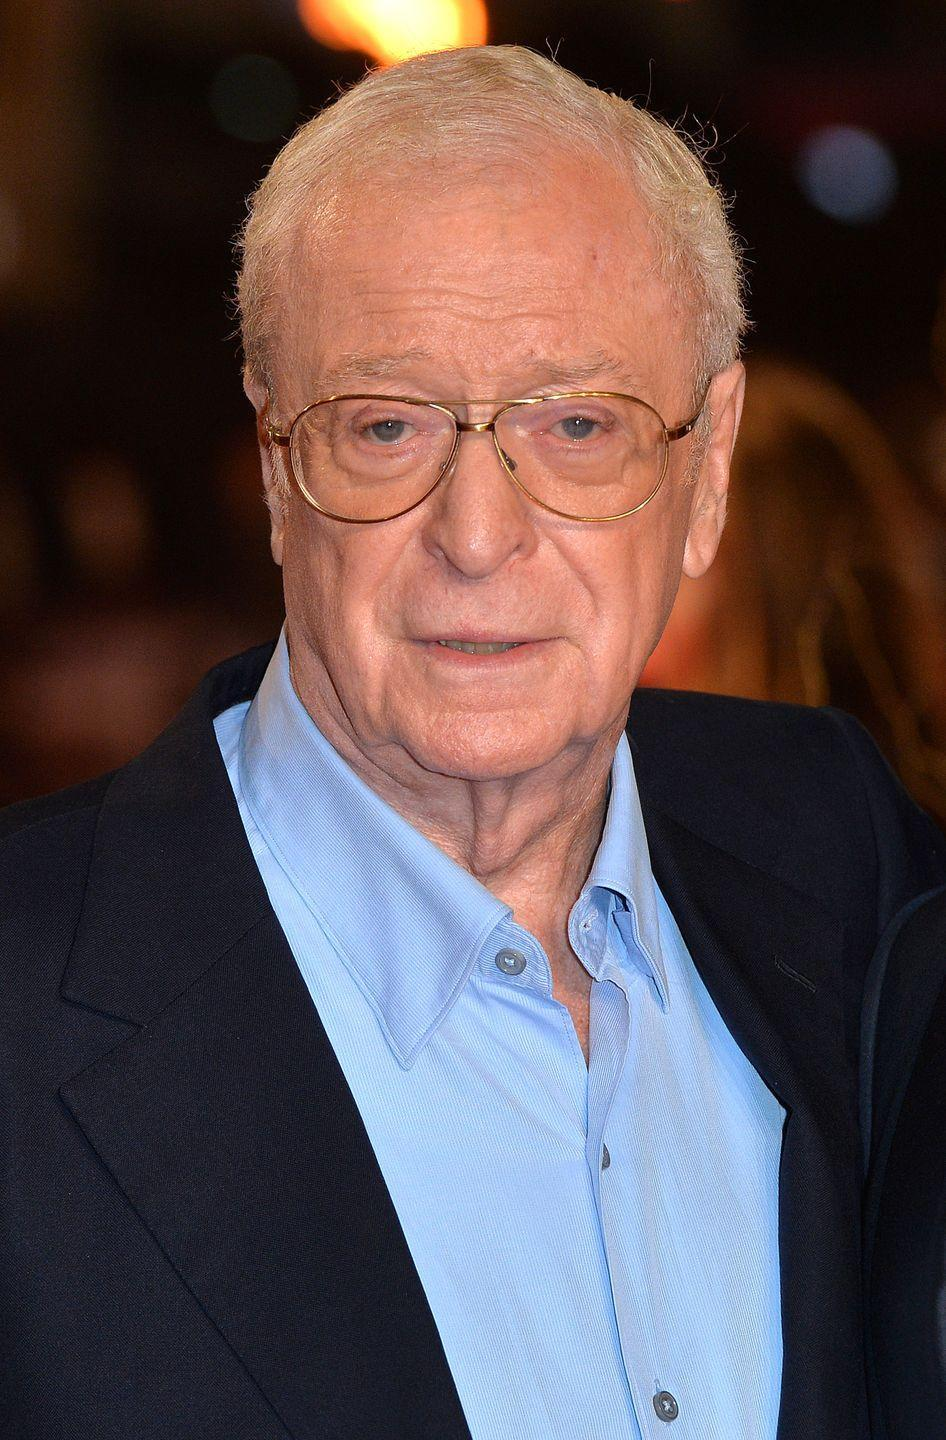 <p>Anyone who casts Michael Caine to play a character called Hoagie does not understand the appeal of Michael Caine.</p>